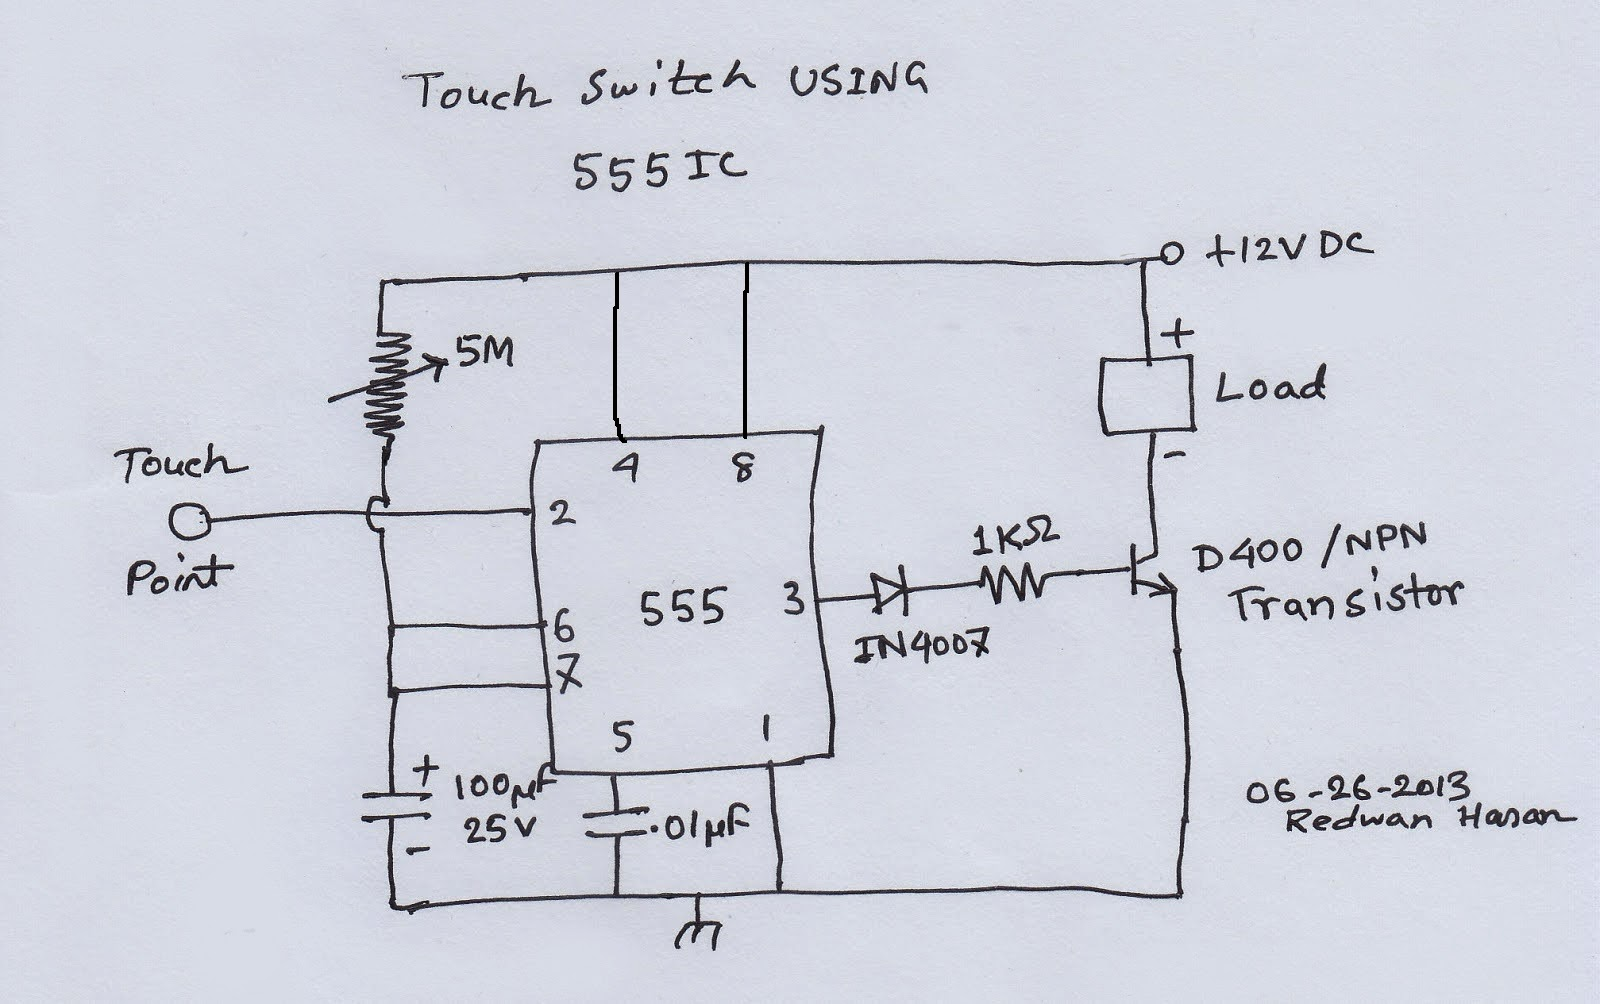 Scavenger's Blog: Touch Switch Using 555 IC